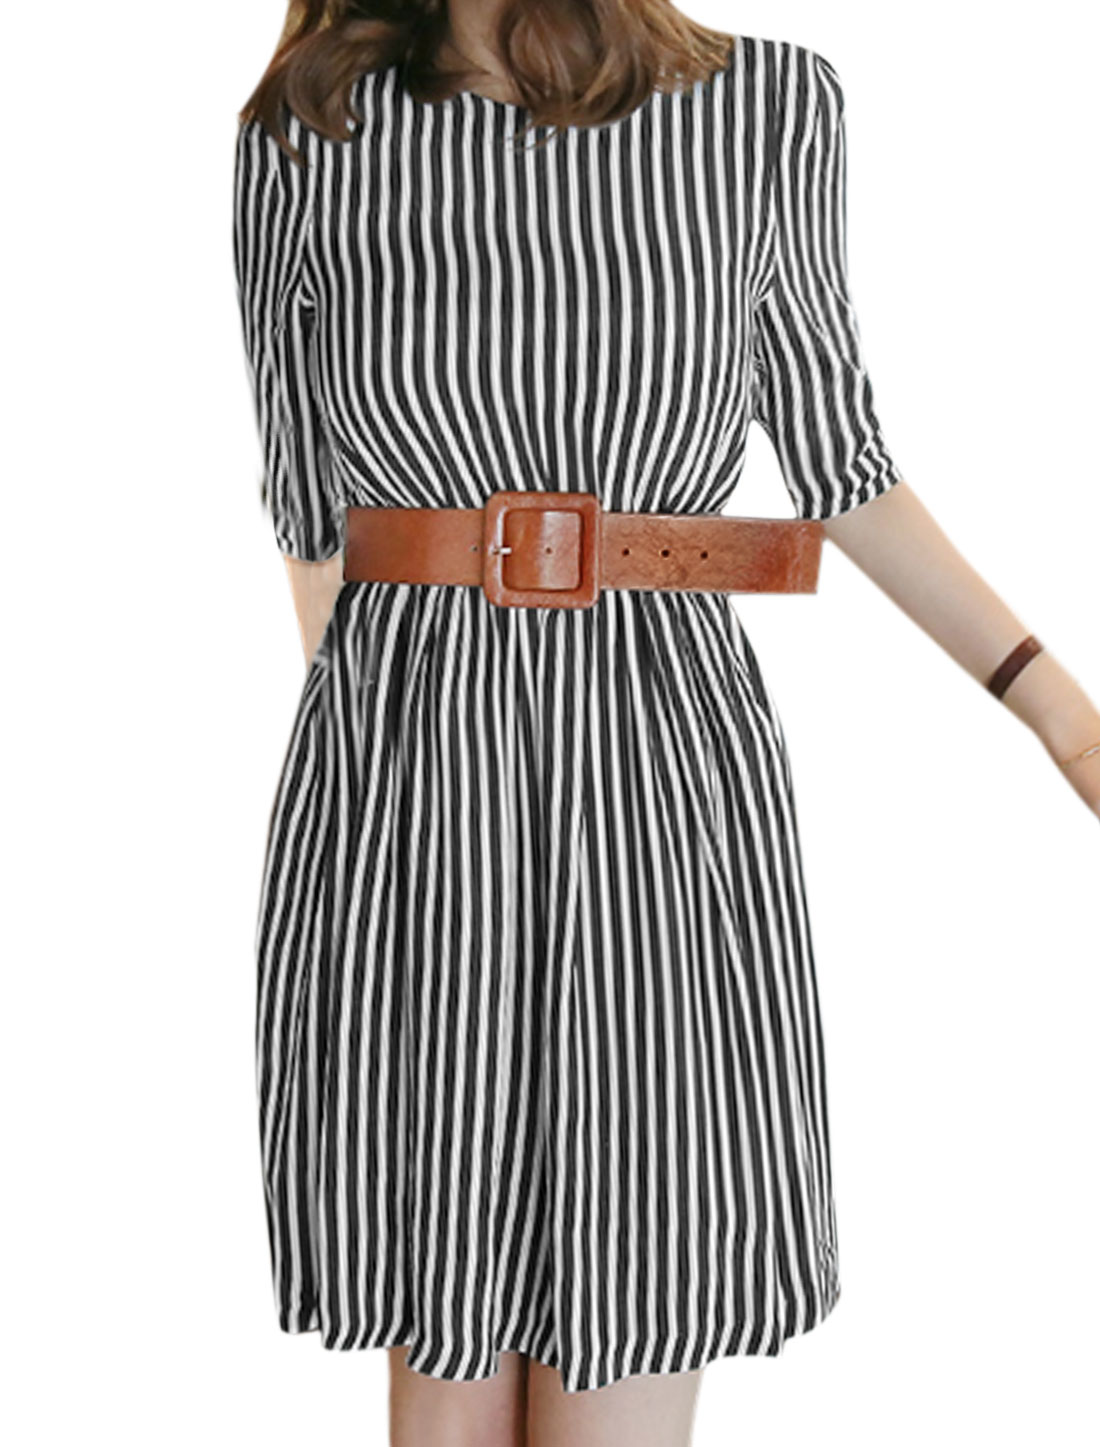 Women 3/4 Sleeves Round Neck Stripes Prints A Line Dress w Belt Black White S